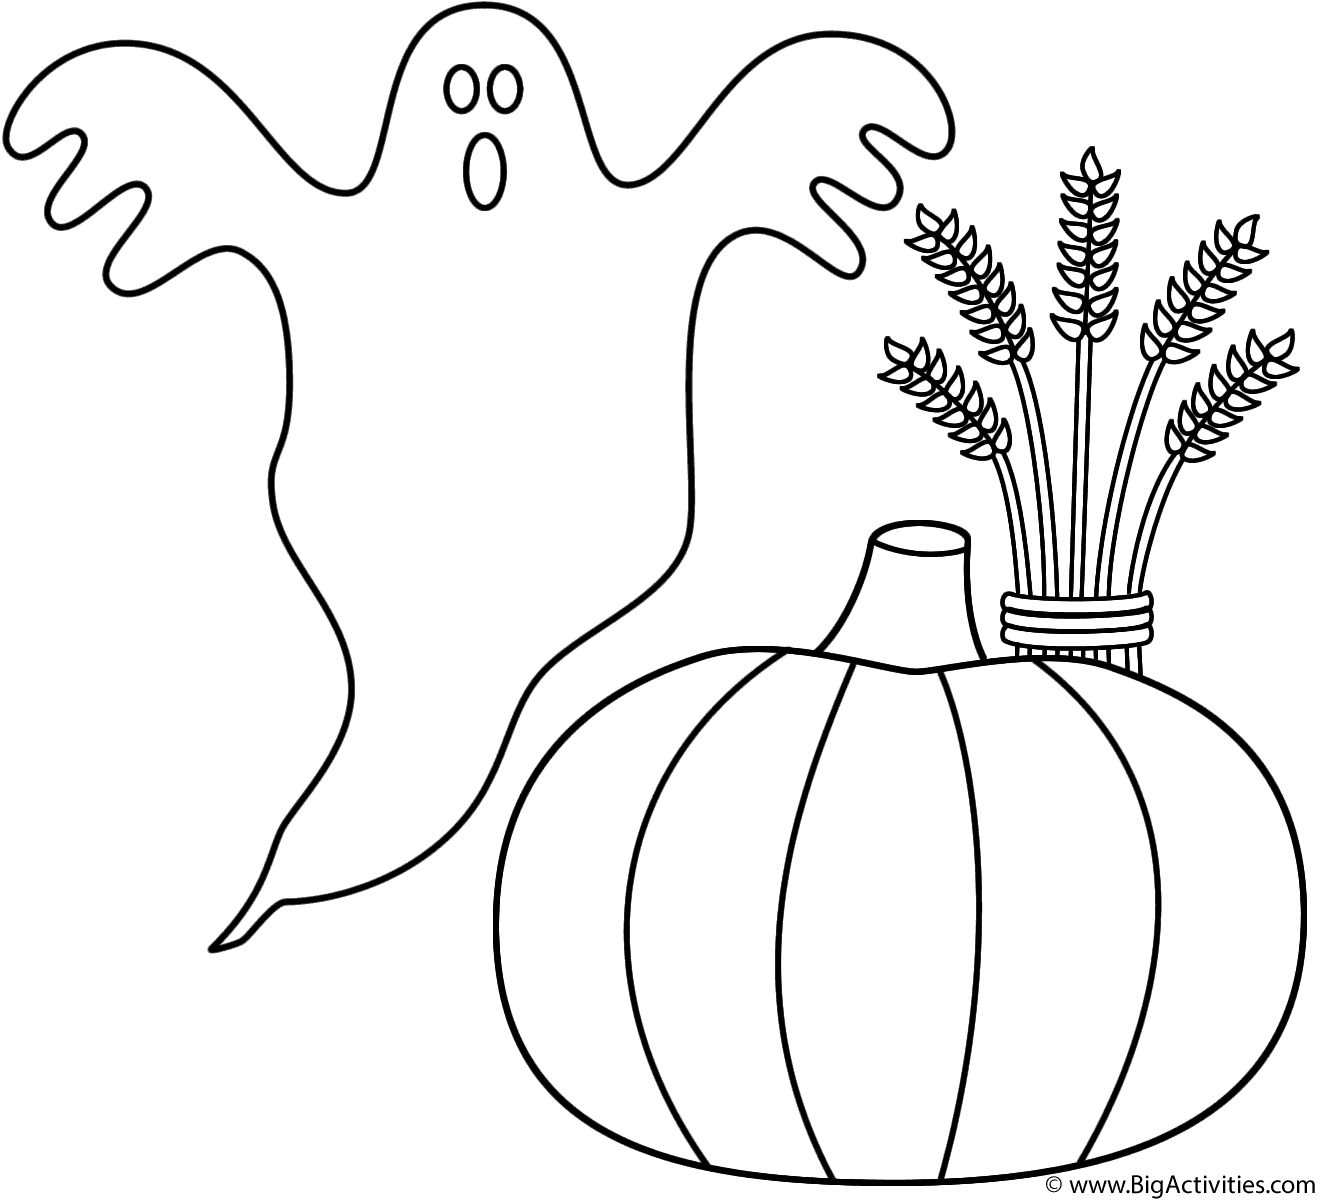 1320x1201 Ghost With Pumpkin And Wheat Sheaf